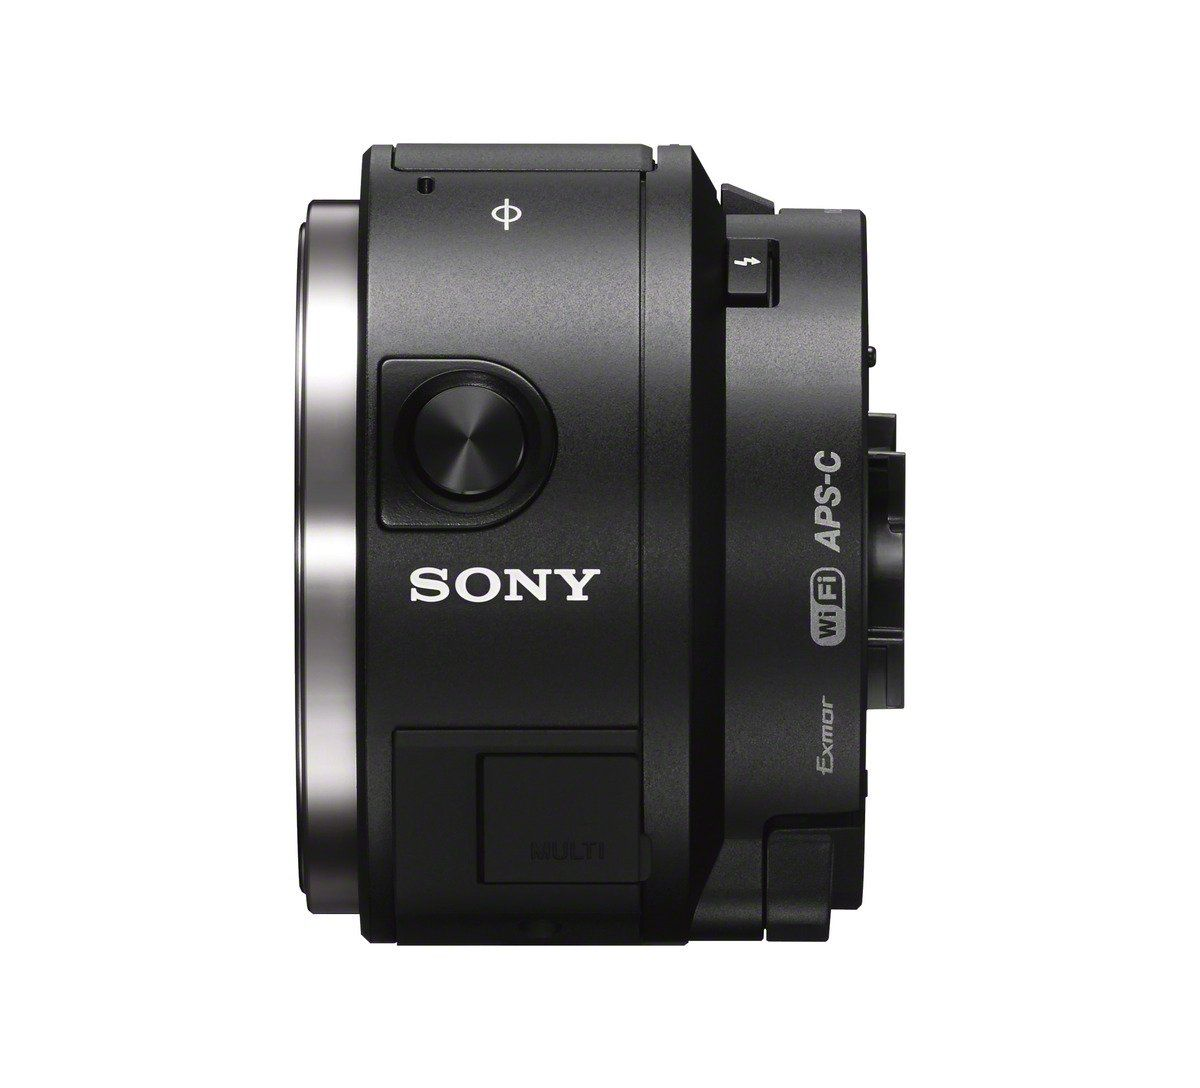 Sony QX1 400 Zoom lens for iphone, Smartphone lens